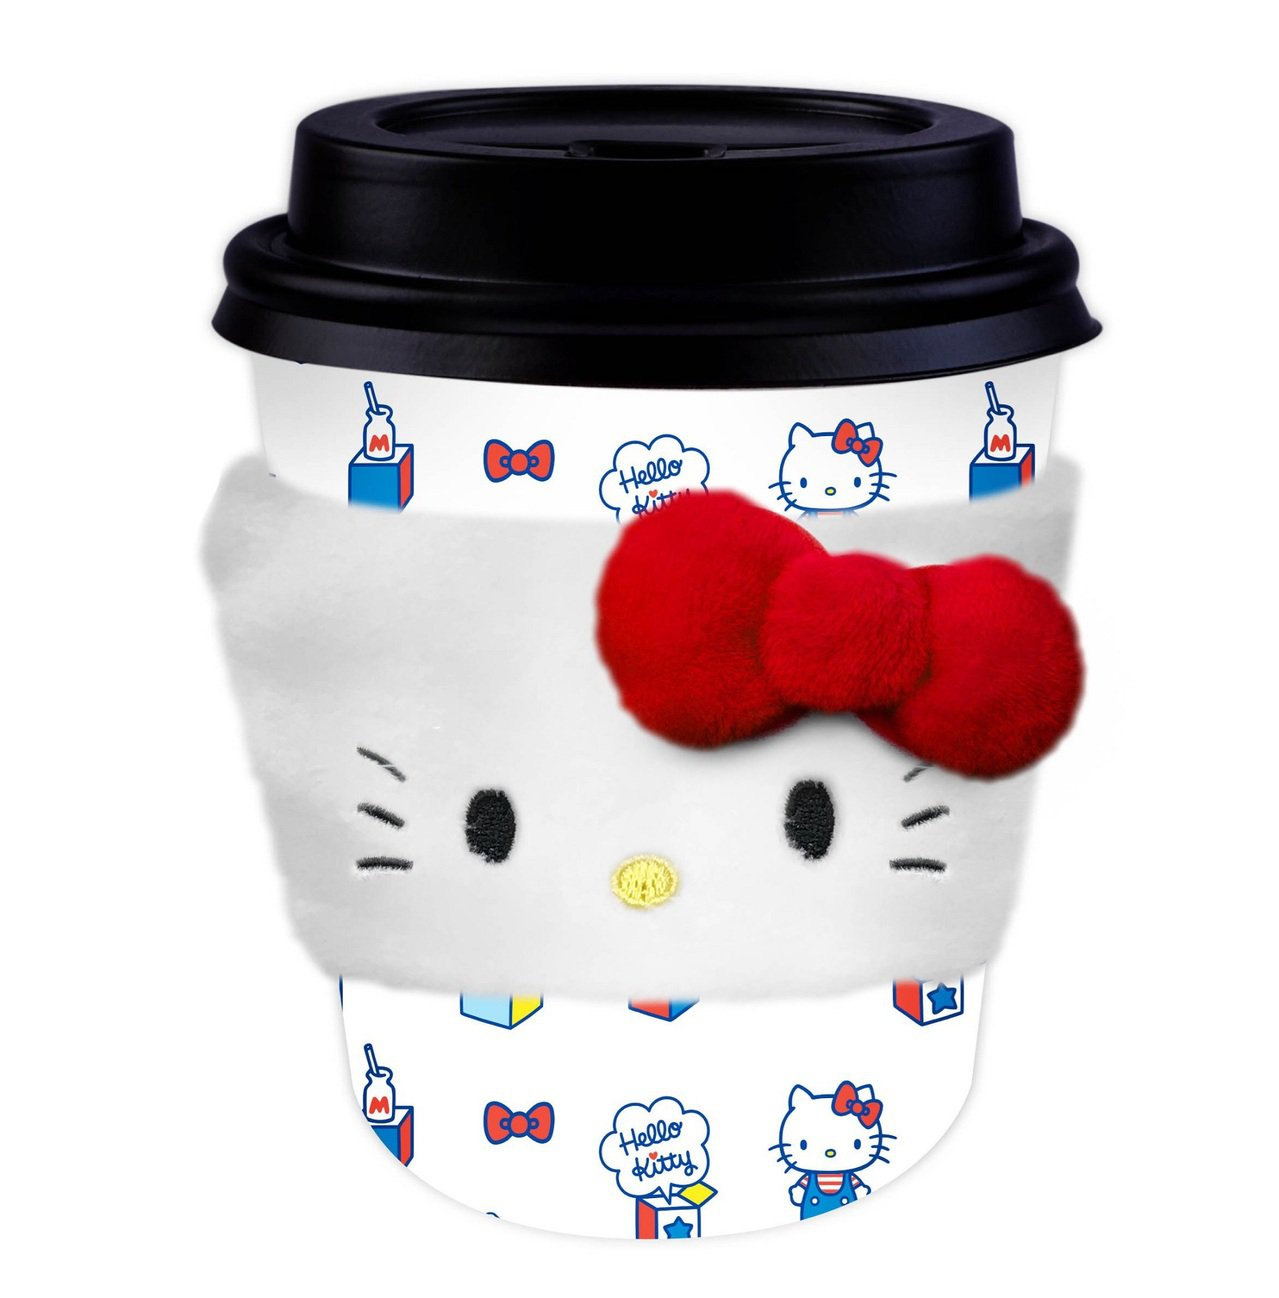 Hello Kitty暖心隔熱杯套,全家便利商店9月11日至10月8日購買指定品...